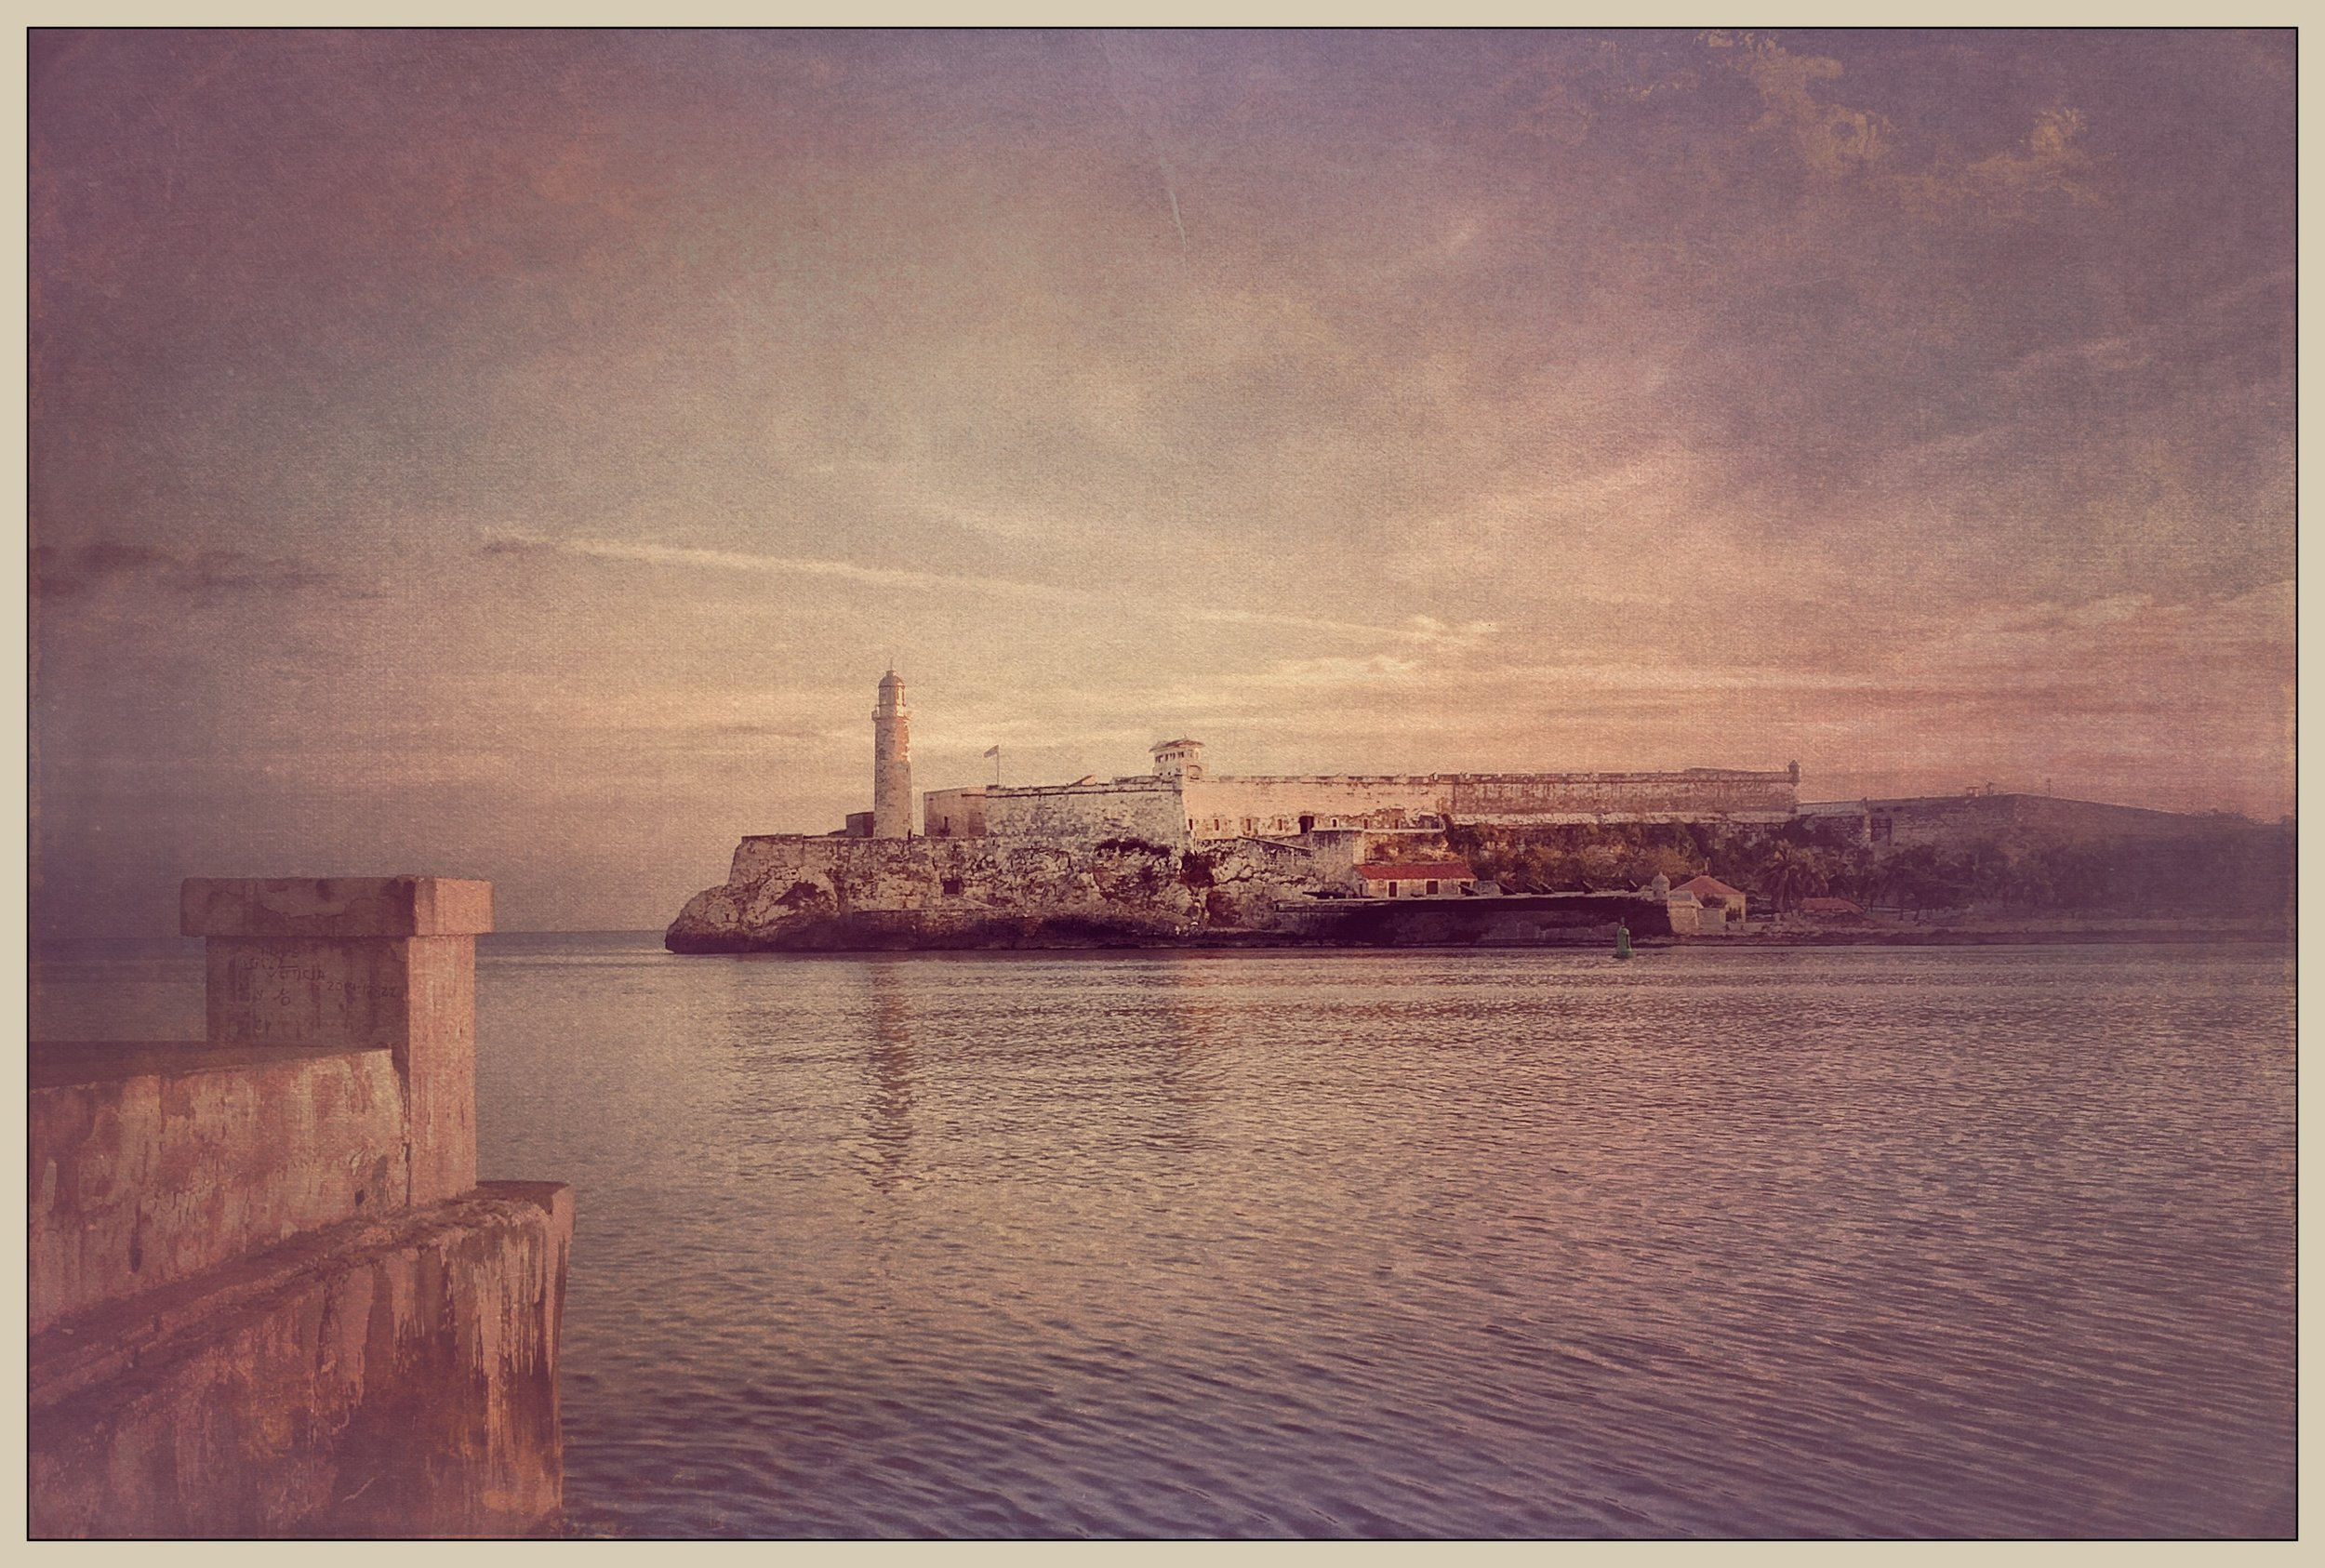 Morro Castle across Havana Harbor  [Photo Credit: Rad A. Drew]